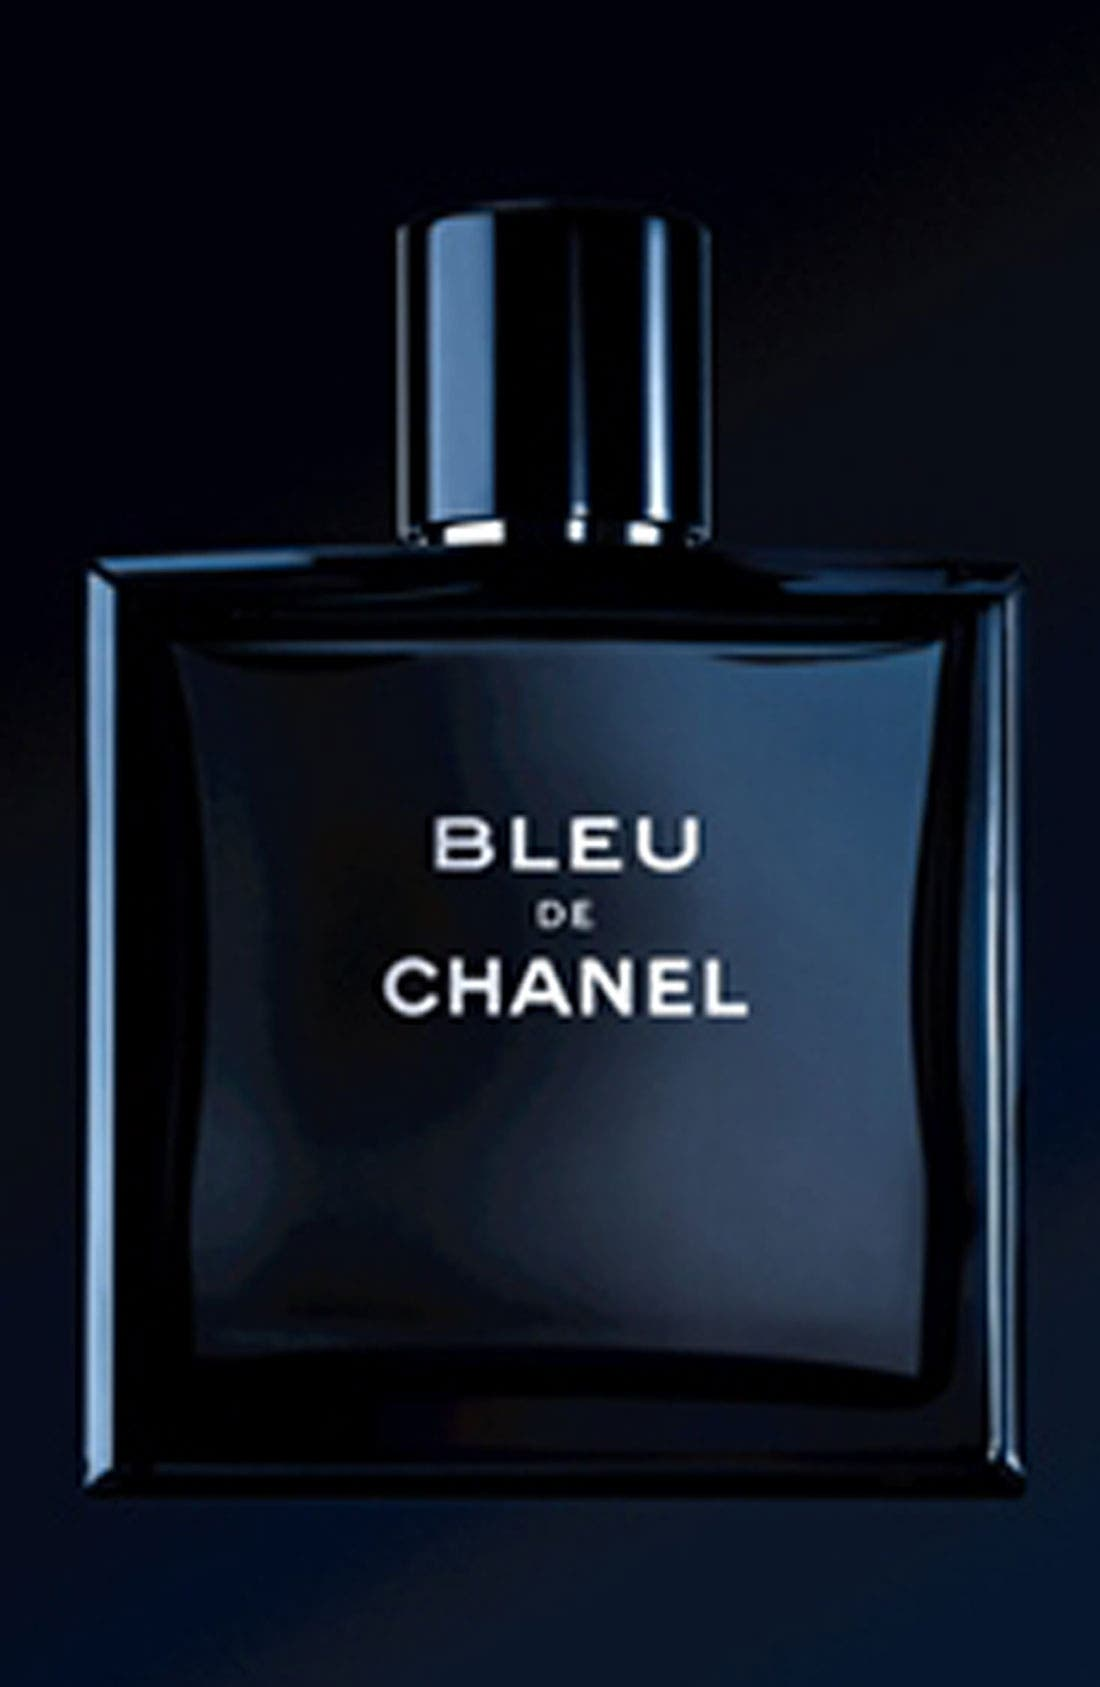 CHANEL, BLEU DE CHANEL Eau de Toilette Spray, Alternate thumbnail 2, color, NO COLOR